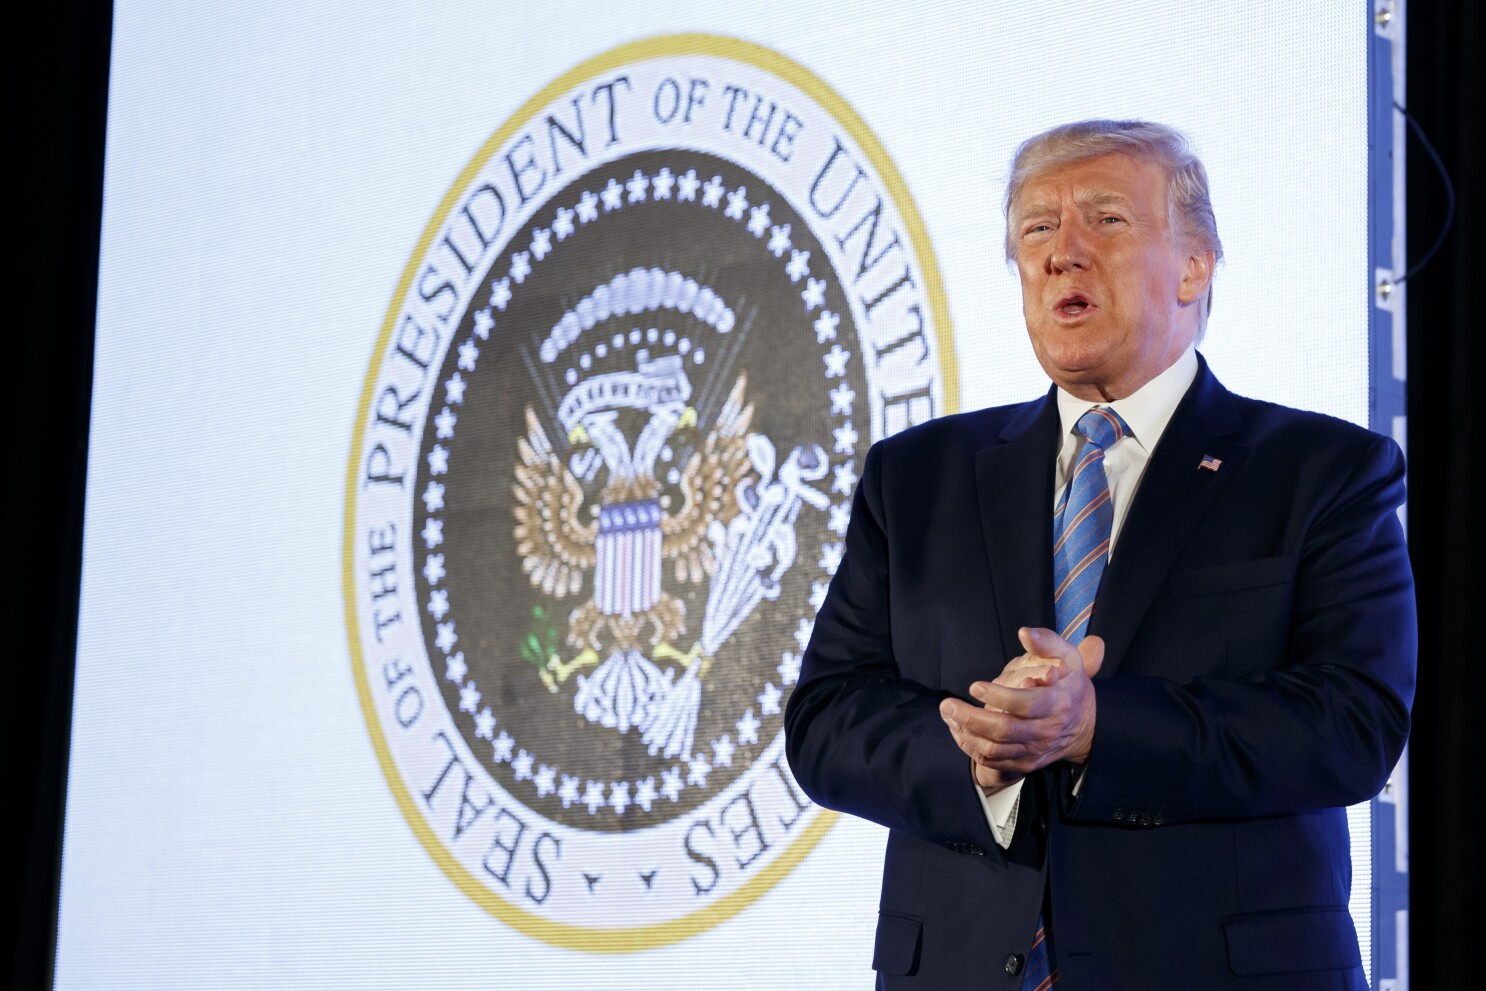 The man behind the fake presidential seal mocking Trump has been revealed